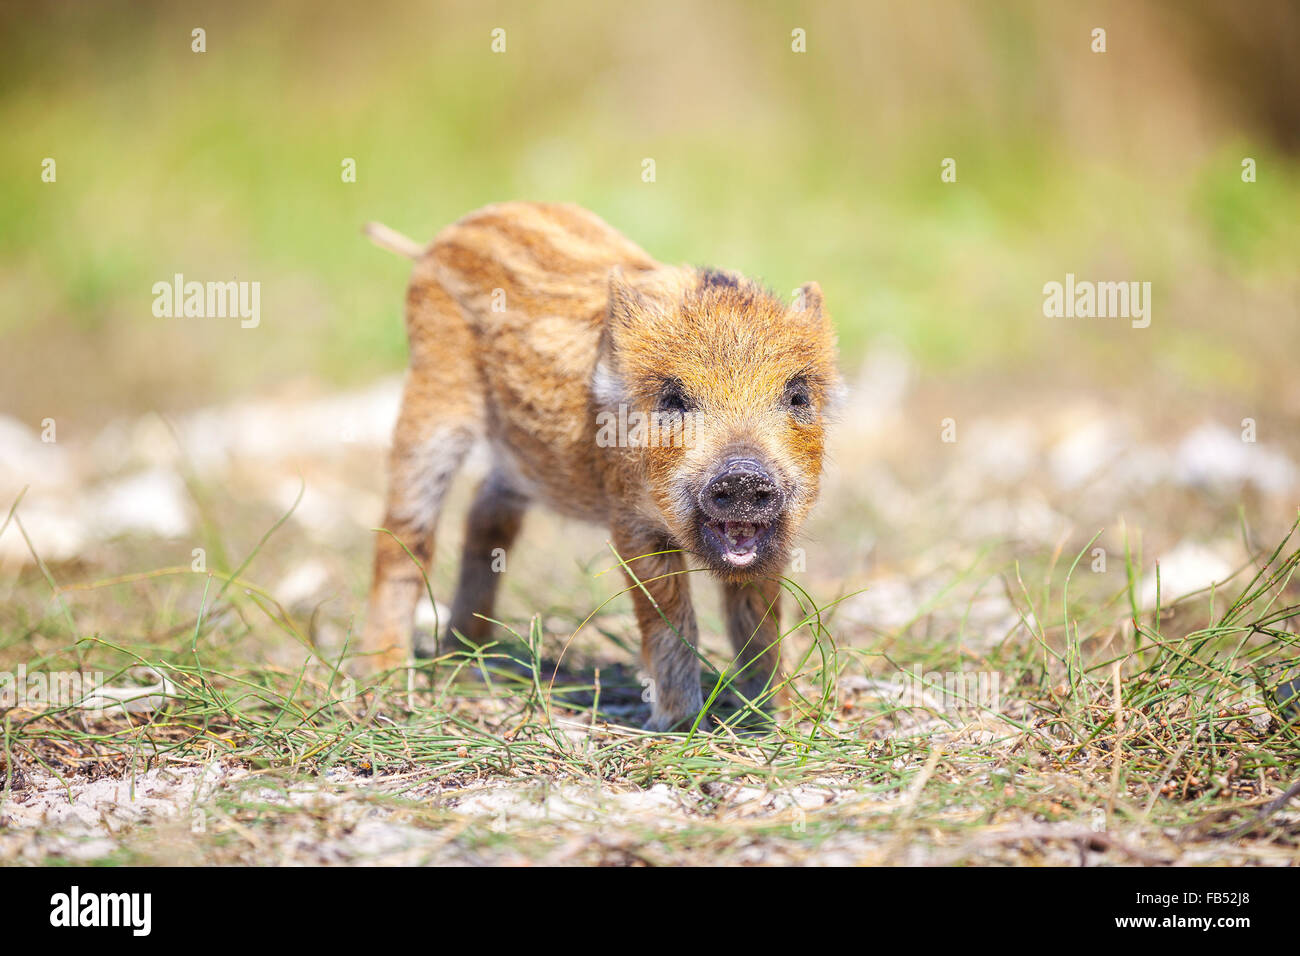 Wild piglet making calls on summer day - Stock Image